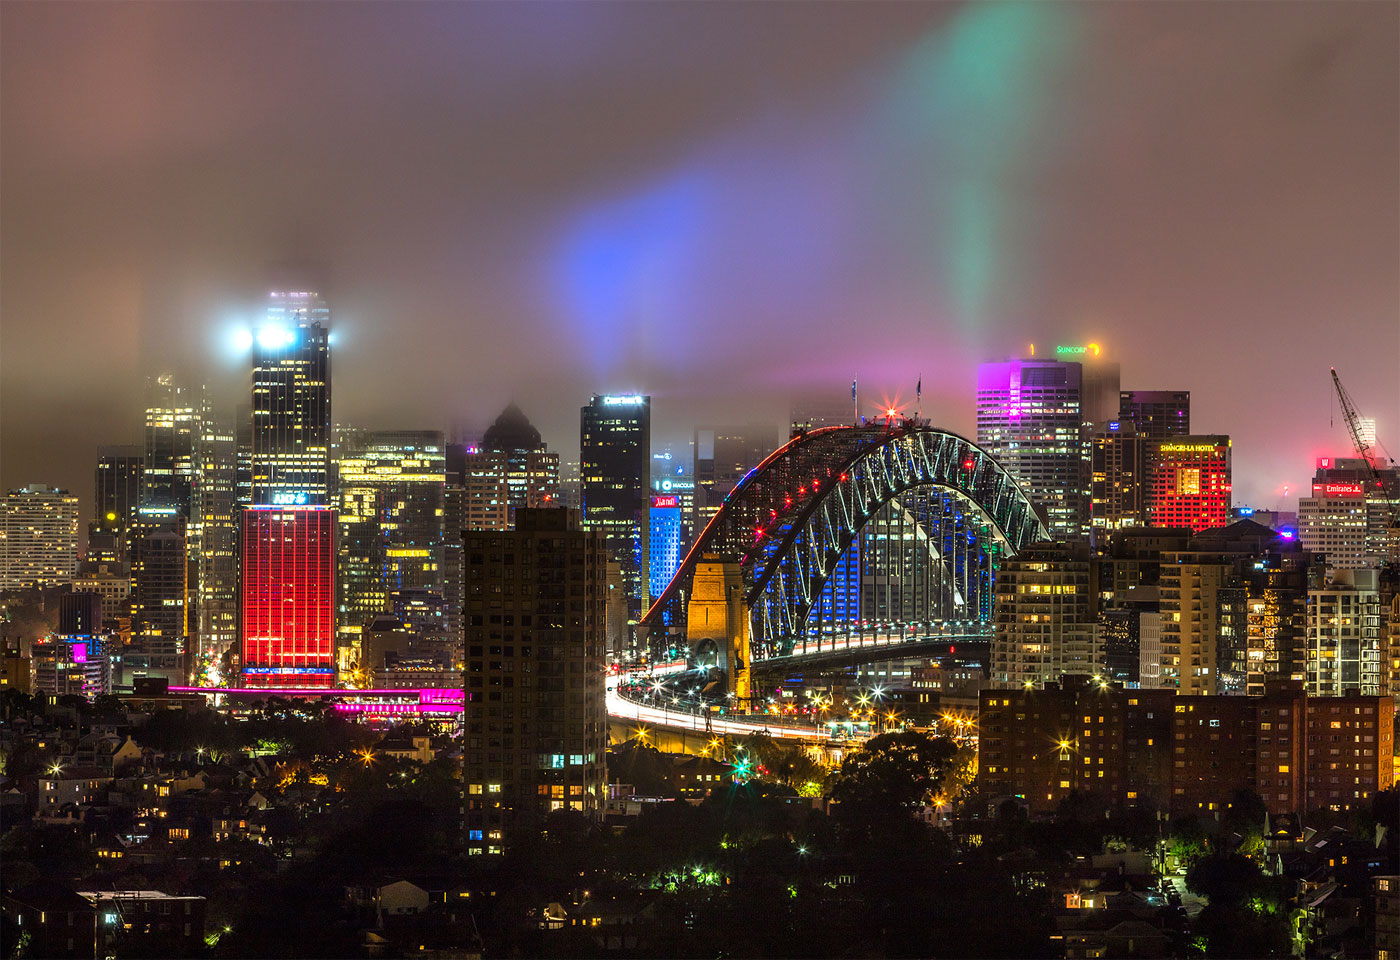 vivid sydney vantage point north sydney image from mohid manchada